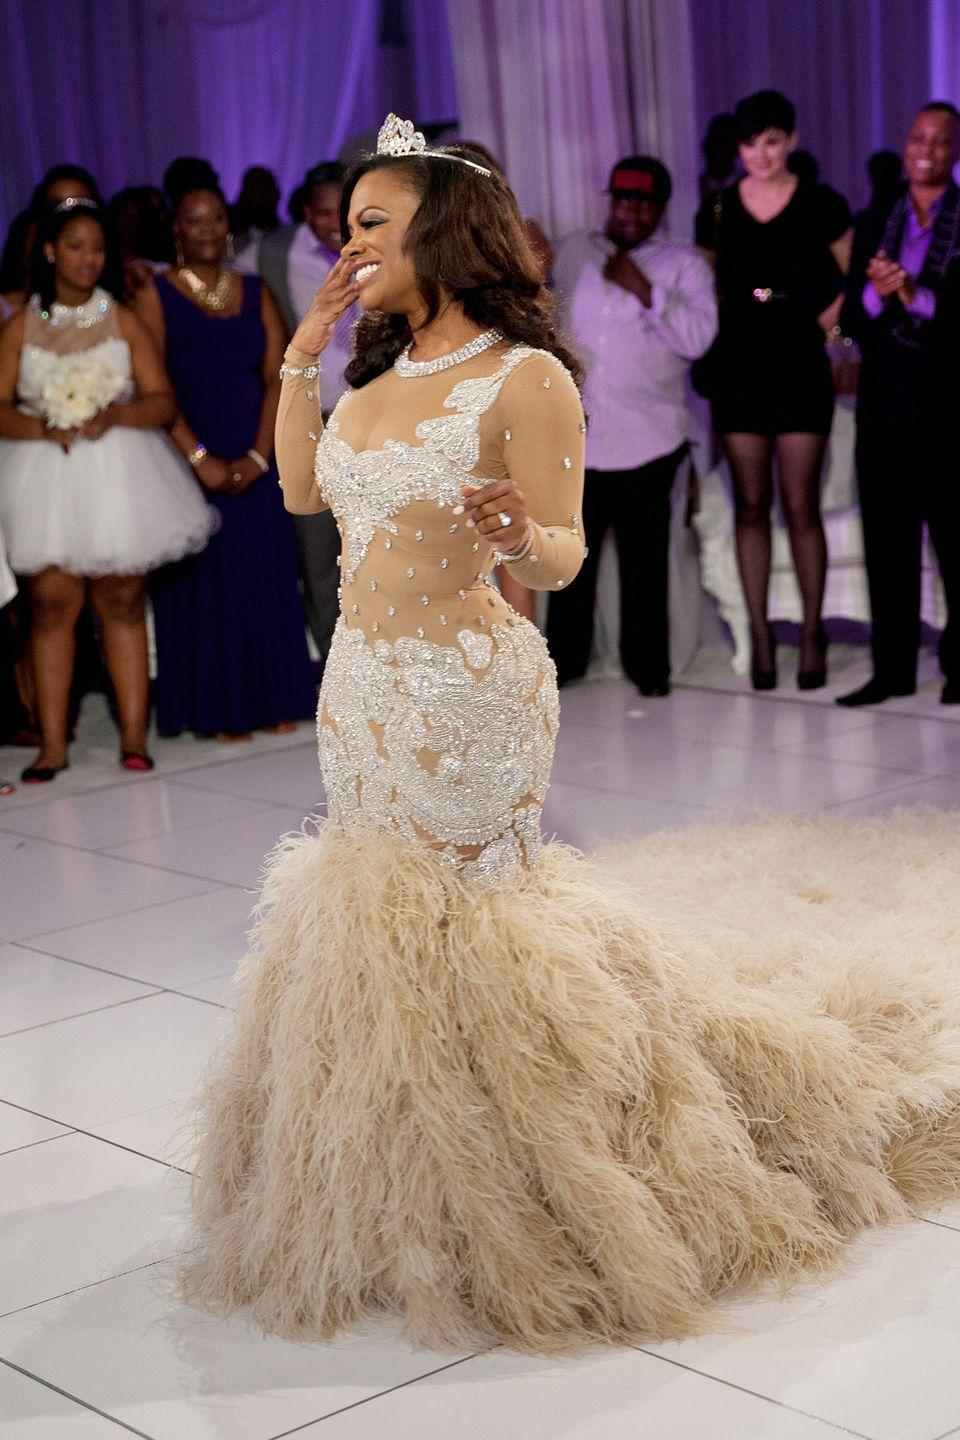 <p>As for Kandi Burruss, another <em>Real Housewives of Atlanta </em>star, there's no surprise here that she didn't hold back for her wedding to Todd Tucker. Her custom Reco Chapple dress reportedly cost $20,000 and featured a 12-foot ostrich feather train.</p>